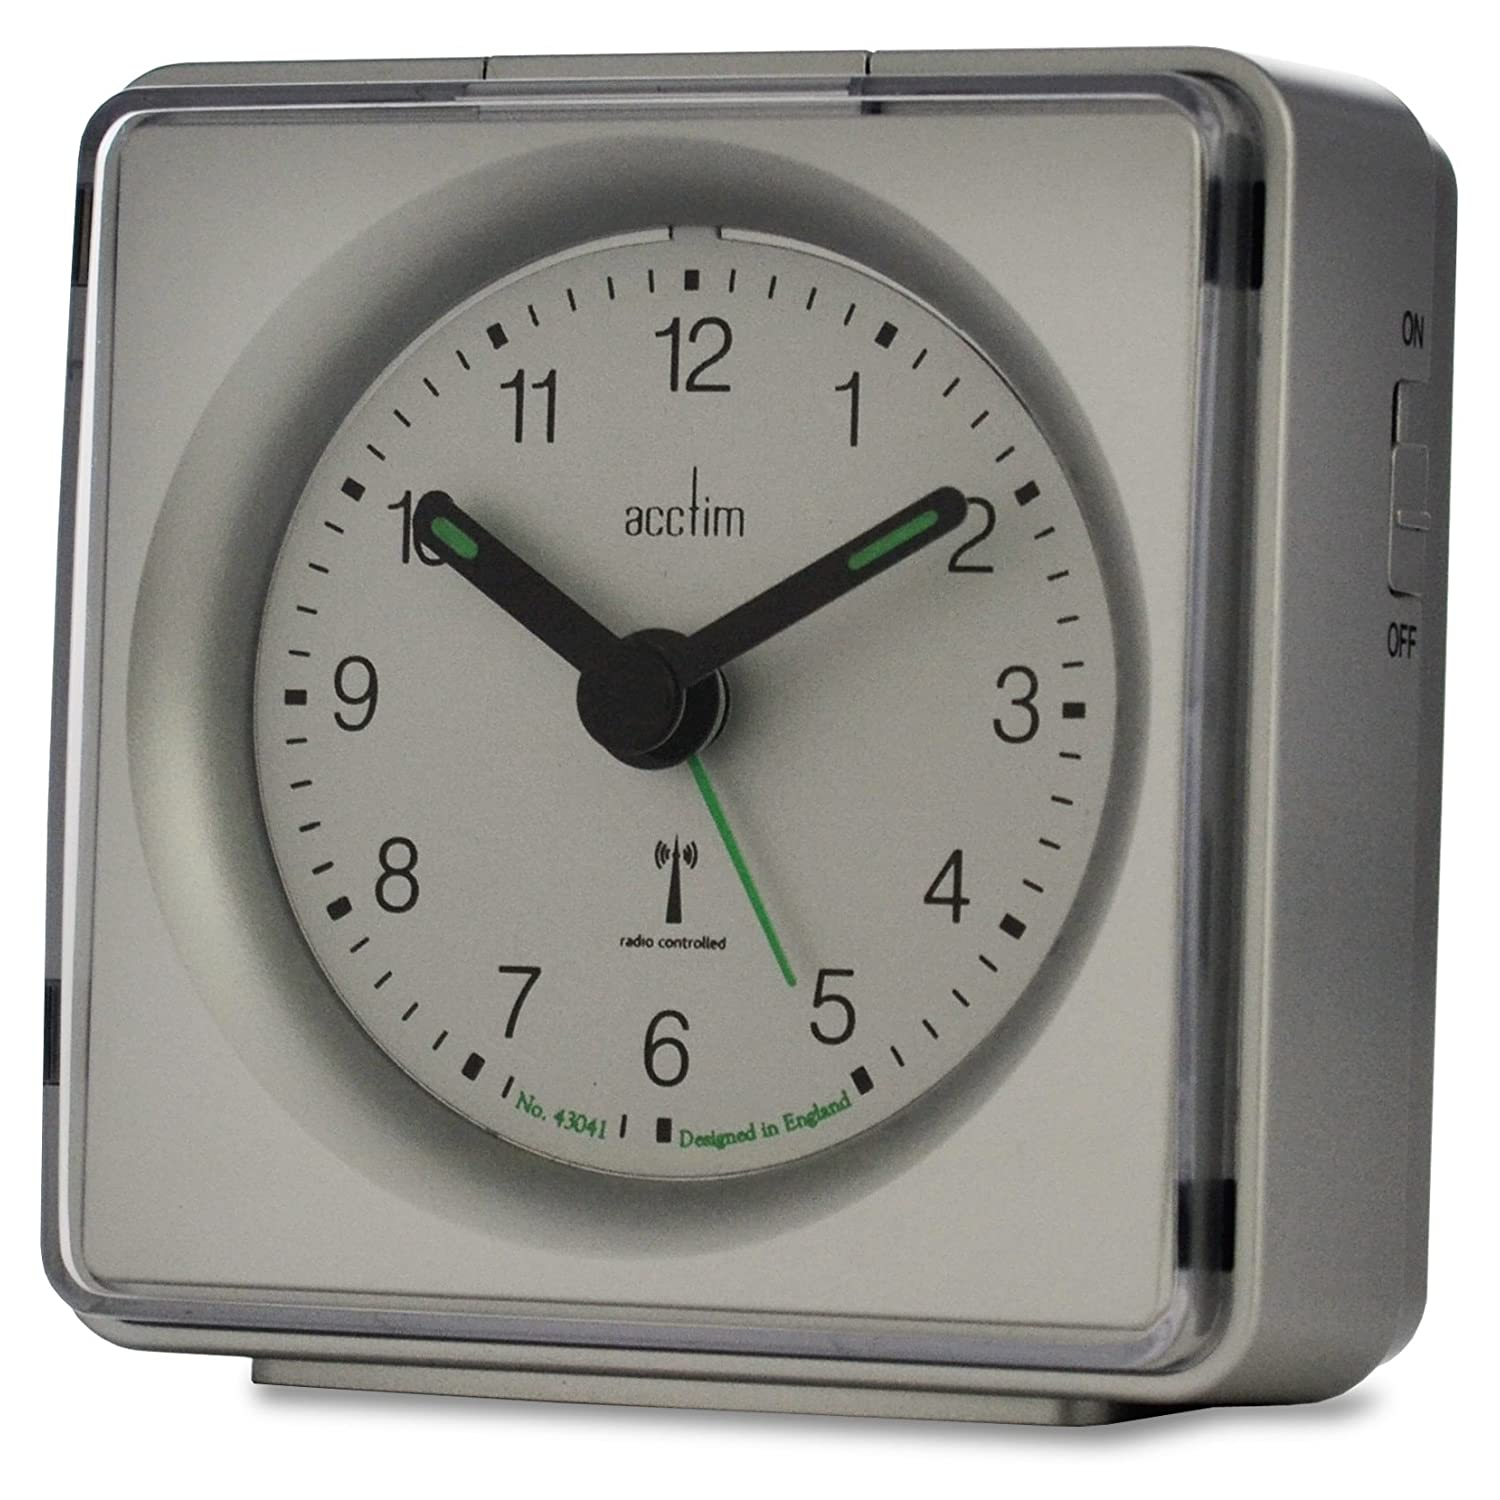 acctim 71437 piper compact alarm clock silver msf signal radio controlled. Black Bedroom Furniture Sets. Home Design Ideas